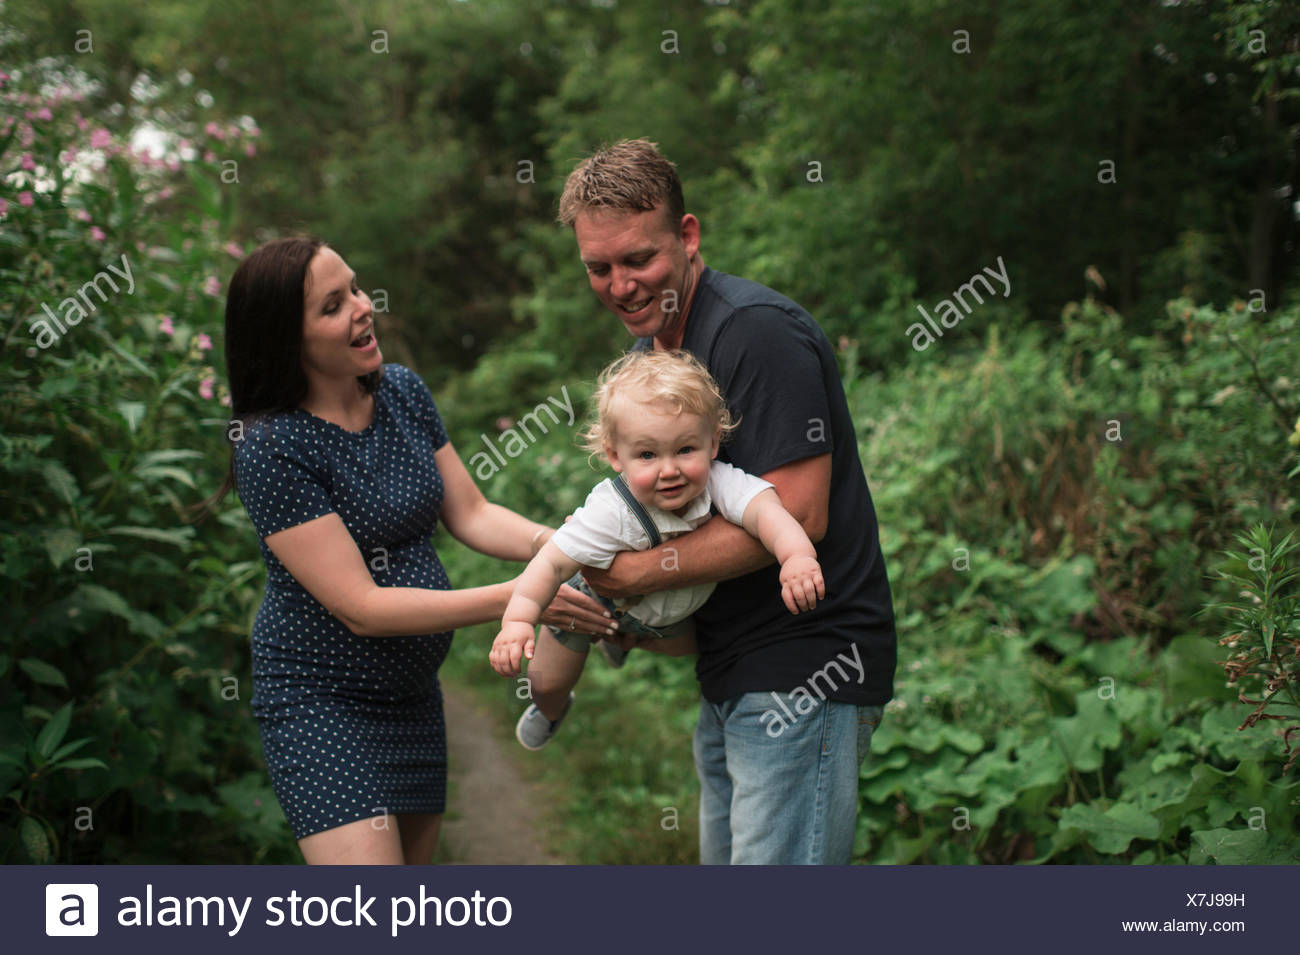 Pregnant couple swinging toddler son on pathway Stock Photo